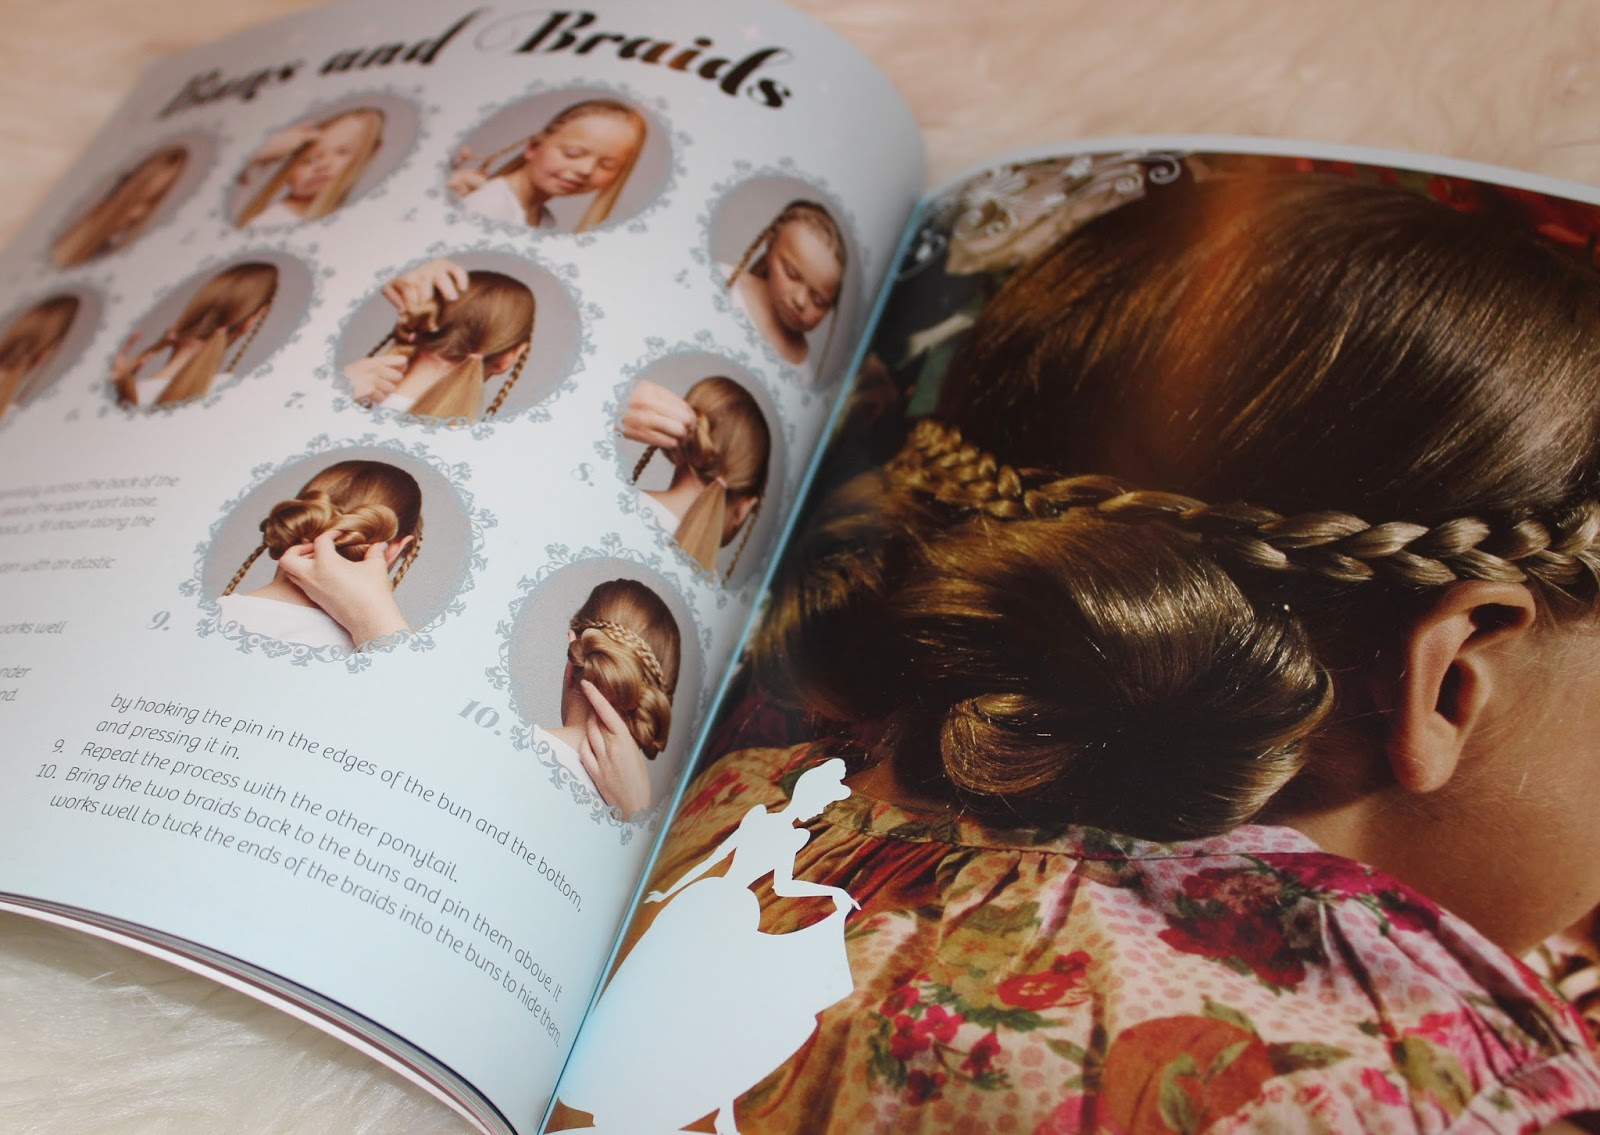 BOOK REVIEW: DISNEY STEP-BY-STEP HAIRSTYLES WITH IMAGES